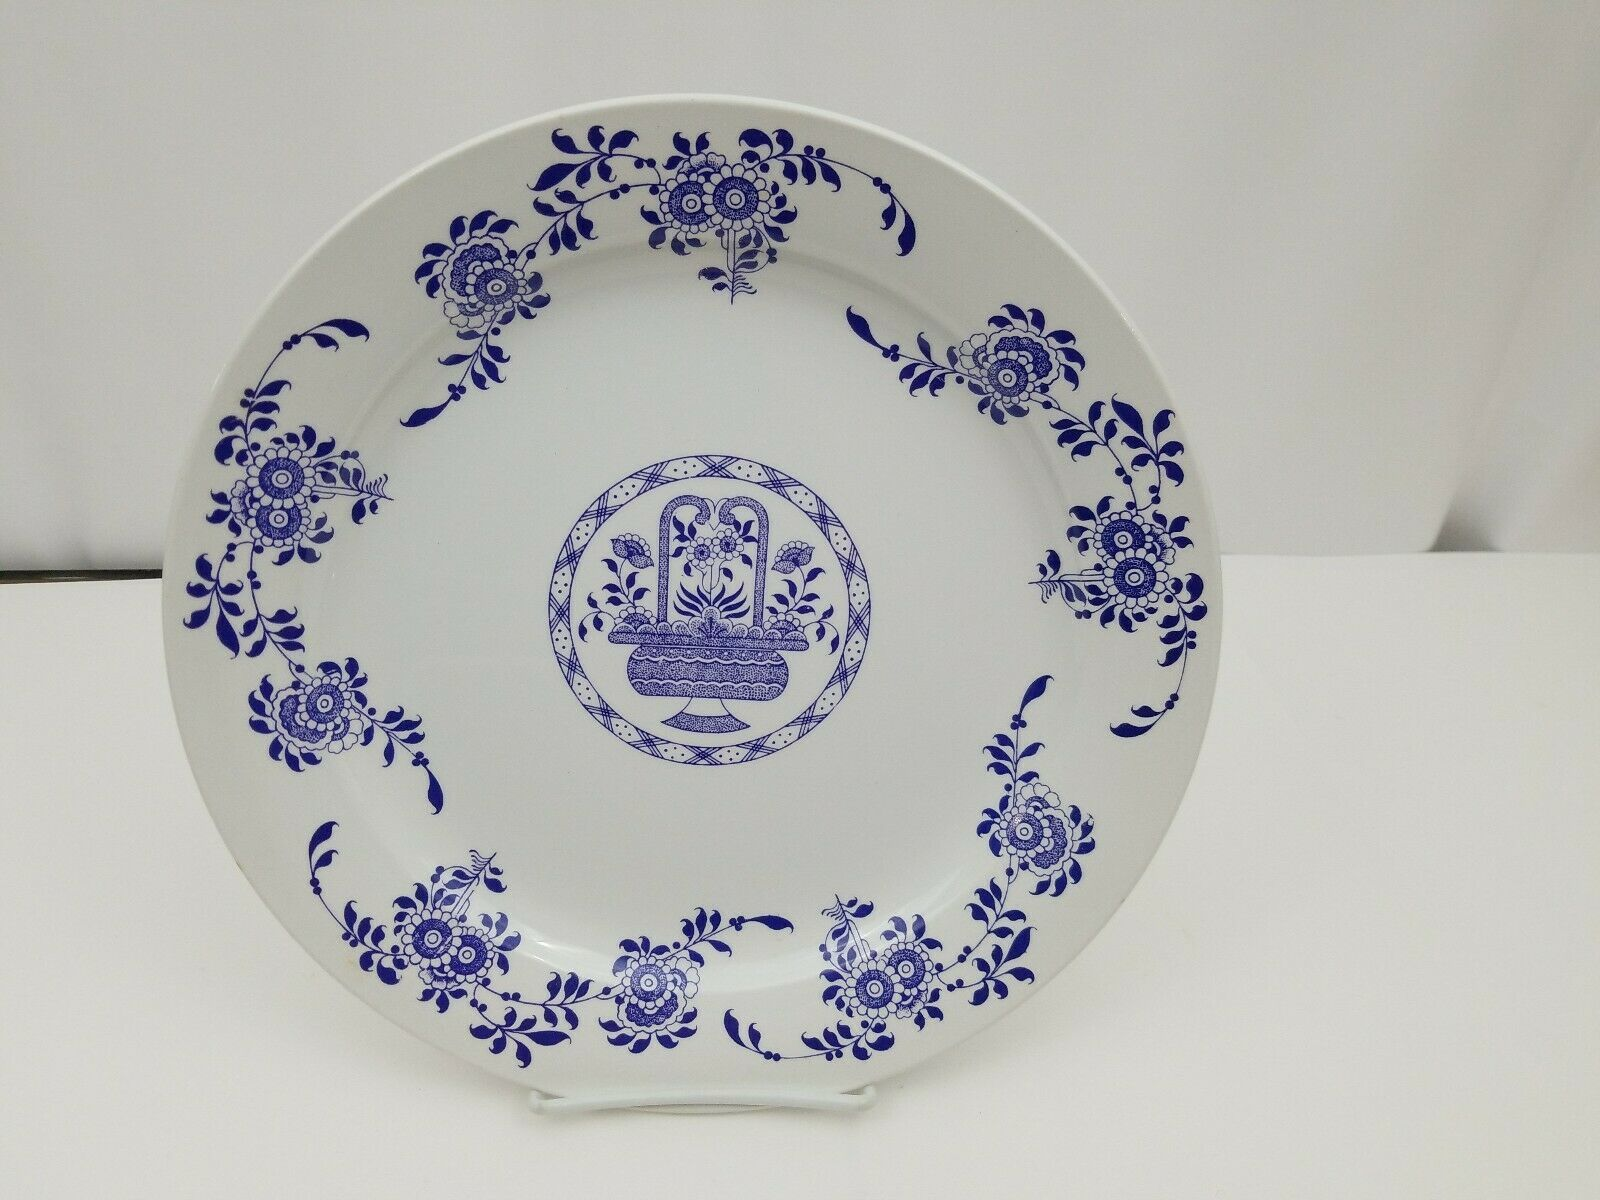 Diamondstone Laveno White Chop Plate / Platter Ceramic Made in Italy 11.5""